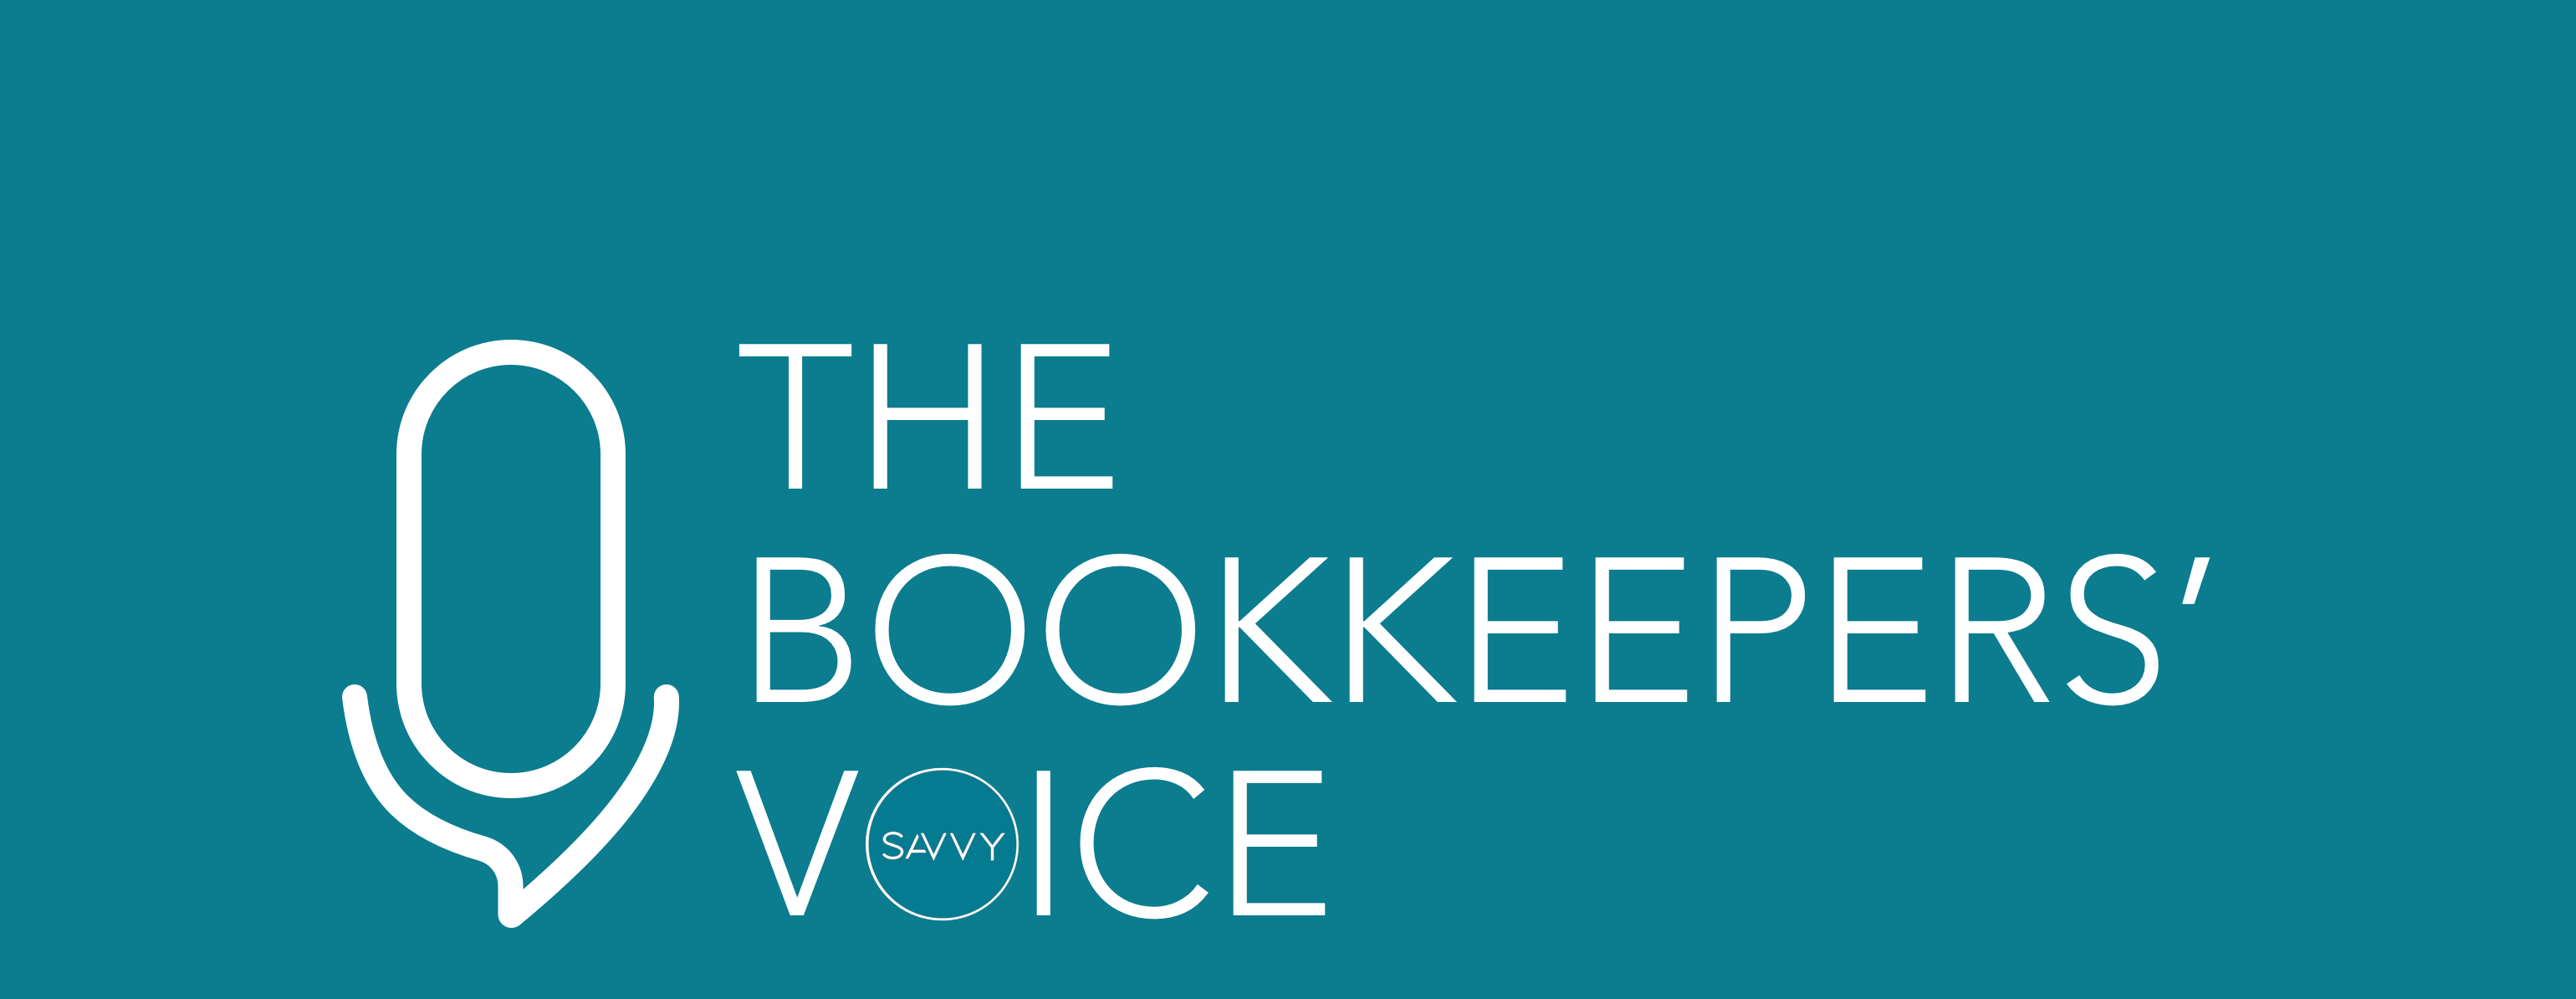 , The Bookkeepers' Voice Podcast | Guest Contributor Details | Australian Business Podcast, The Savvy Bookkeeper